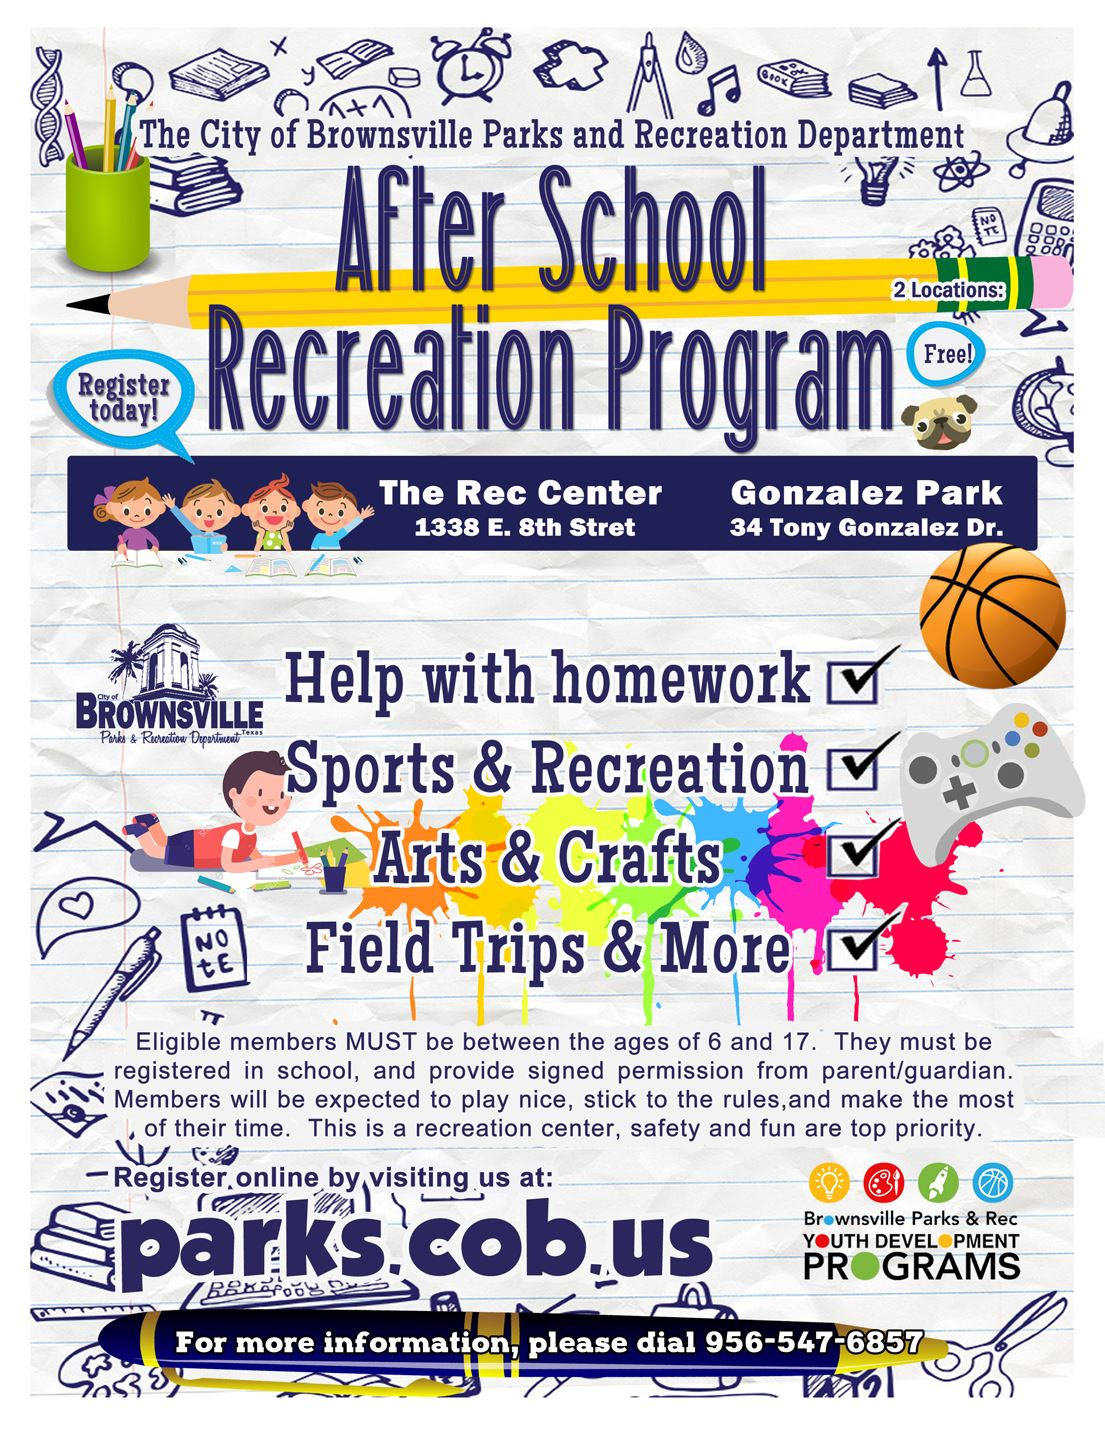 After School Recreation Program Info